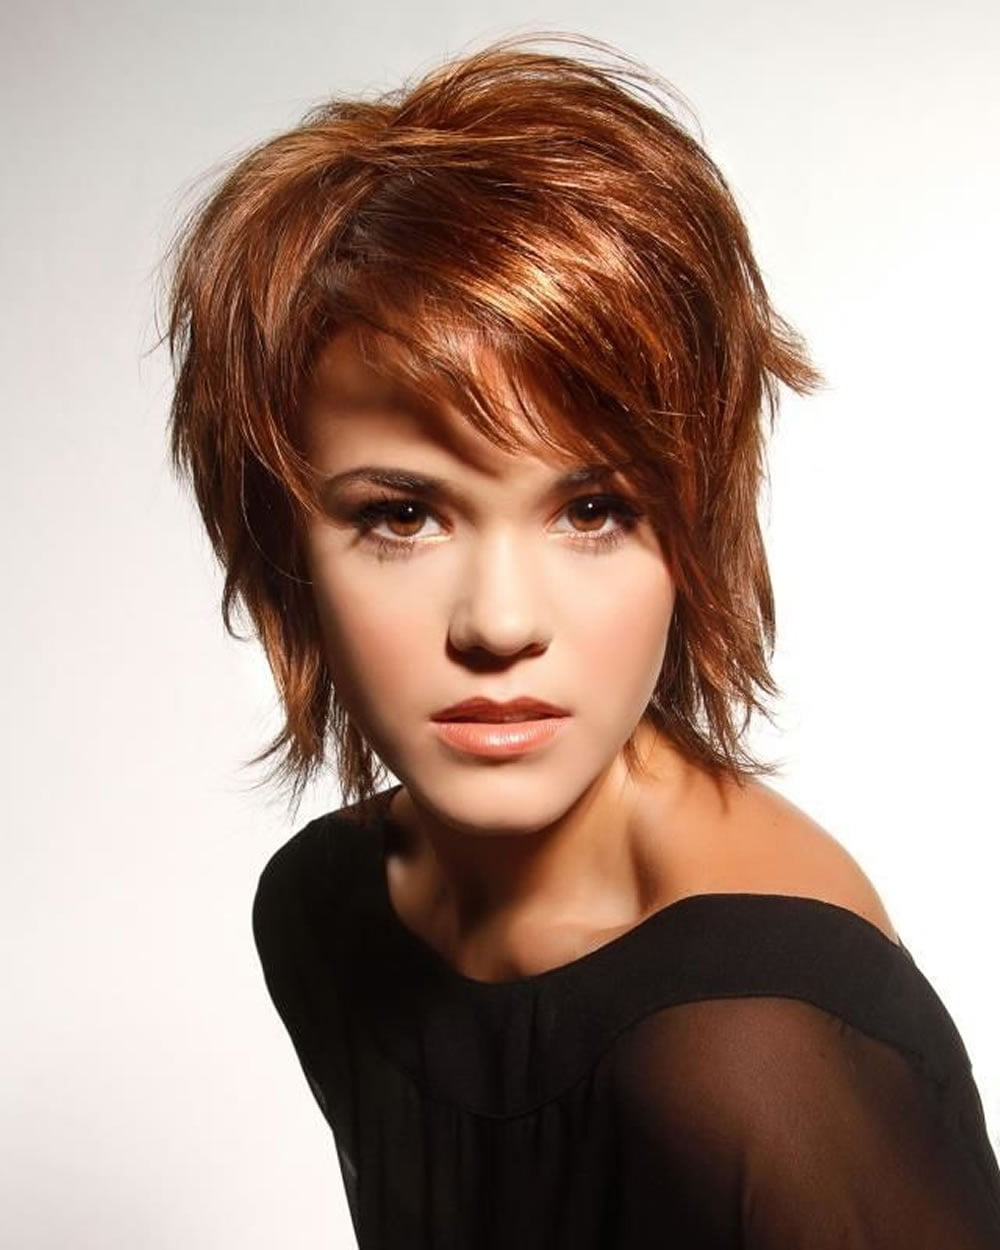 63 Unique Pixie & Bob Haircuts, Hairstyles for Short Hair 2018-2019 - Page 4 - HAIRSTYLES